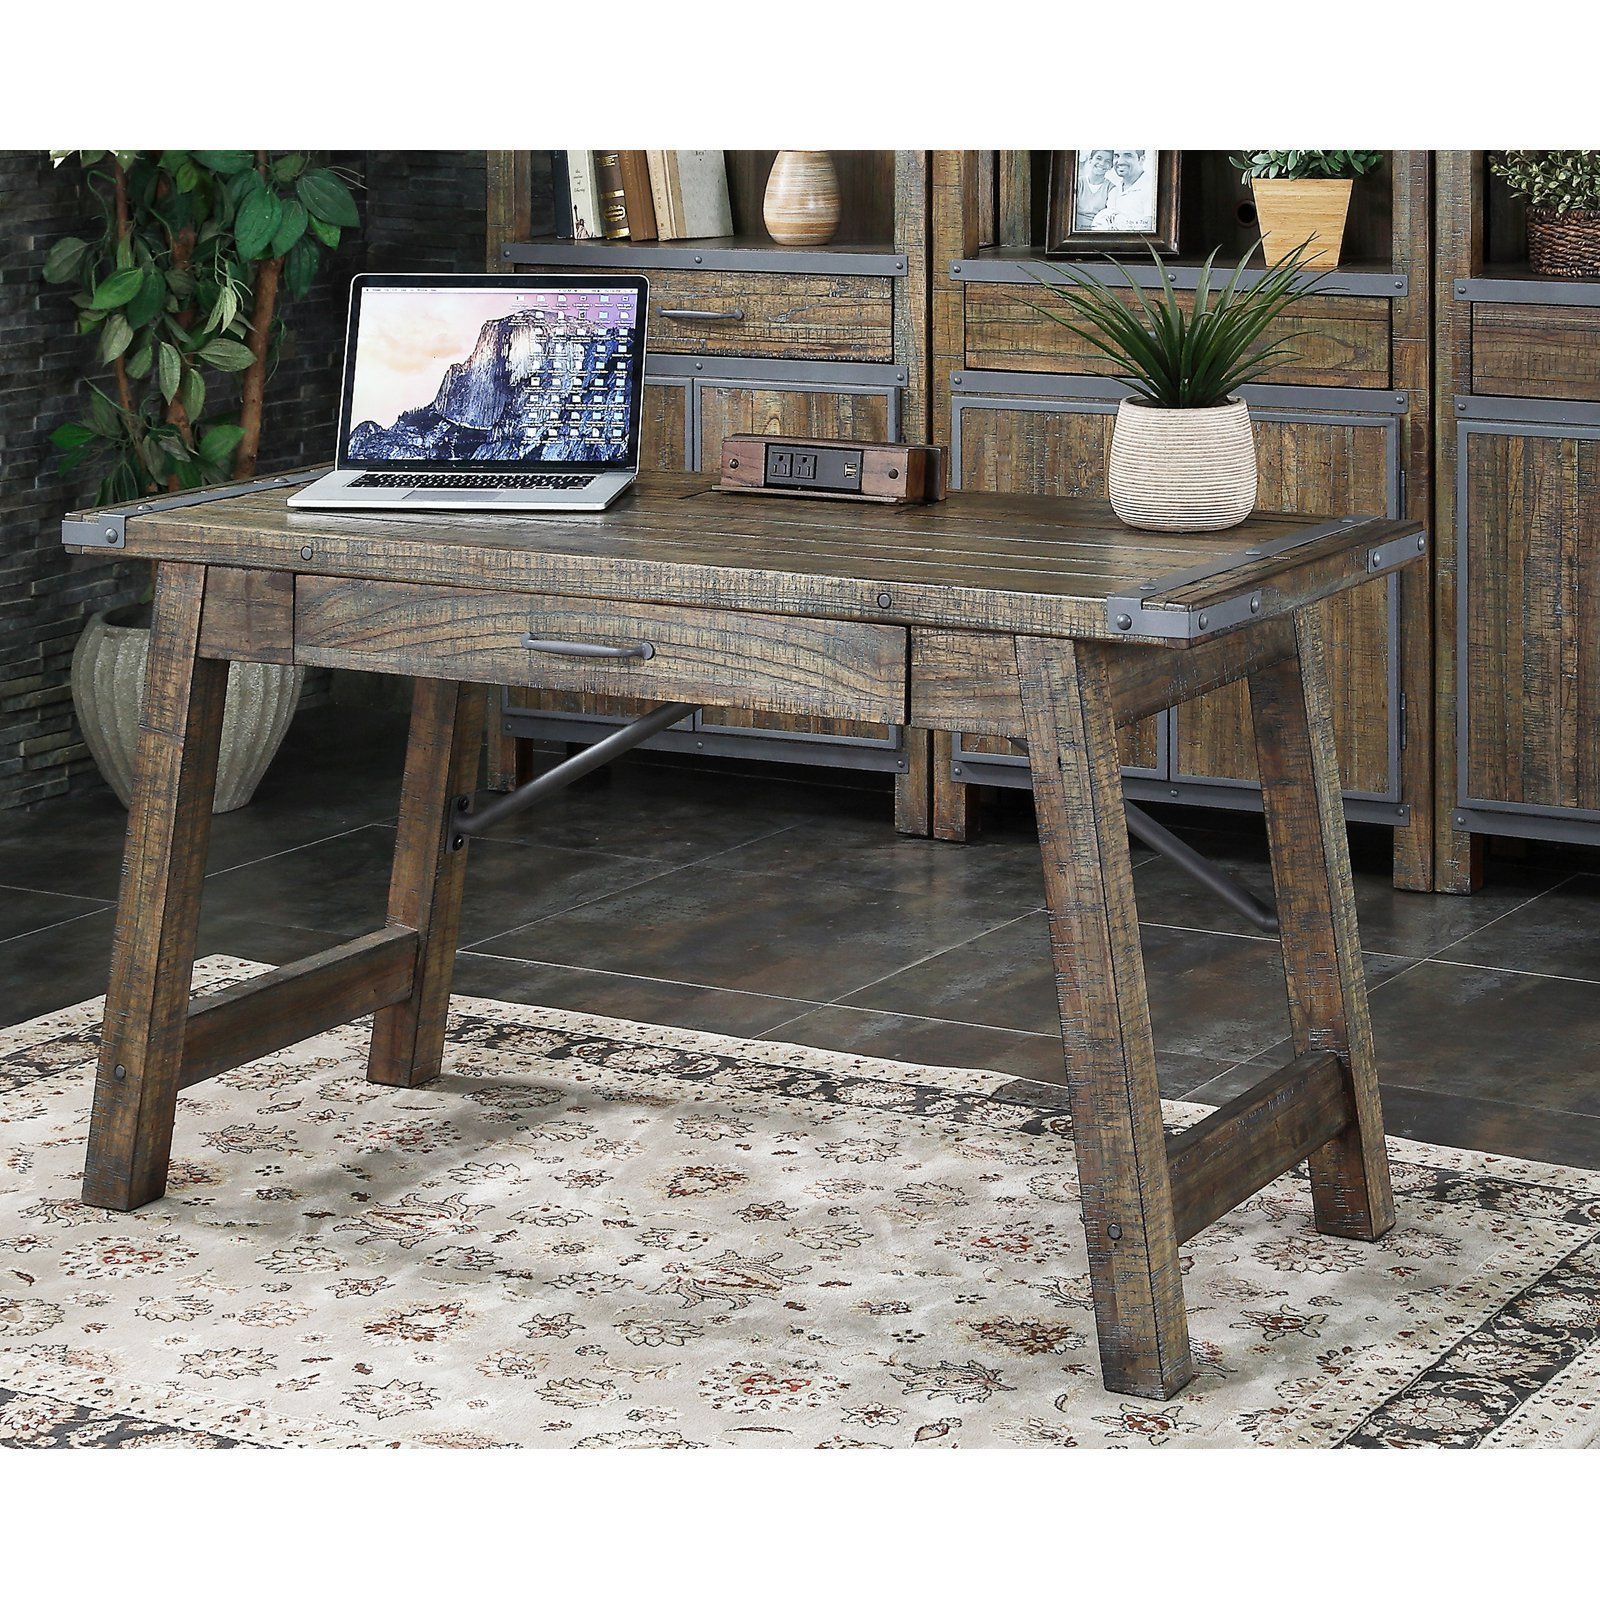 hooker secretary l product du with furniture writing rub desk travial zm office gray antique white traditional off la maison